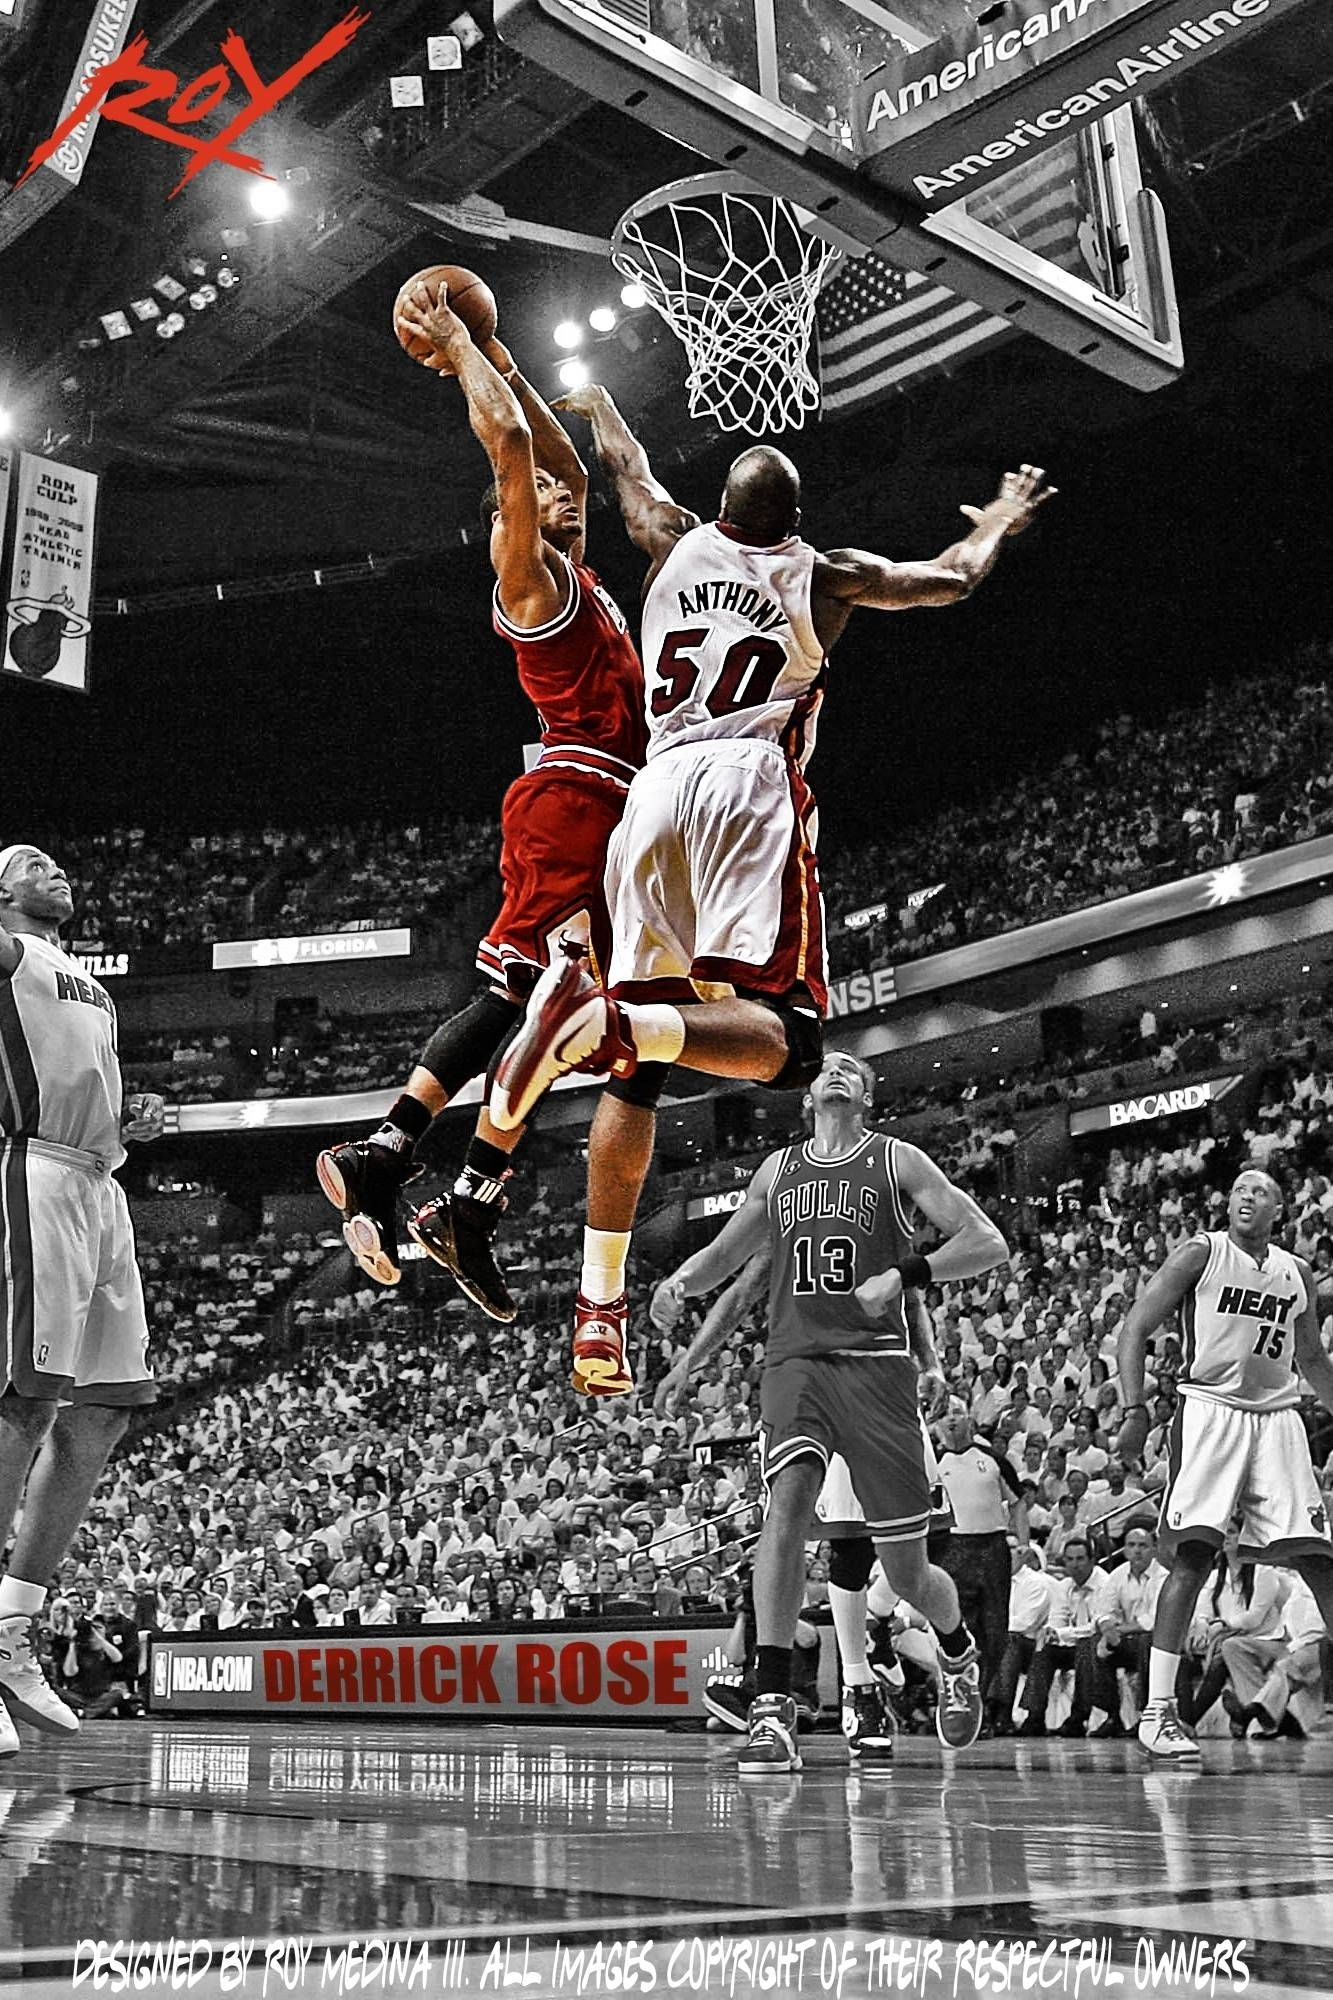 10 New Derrick Rose Iphone Wallpaper FULL HD 1920×1080 For PC Background